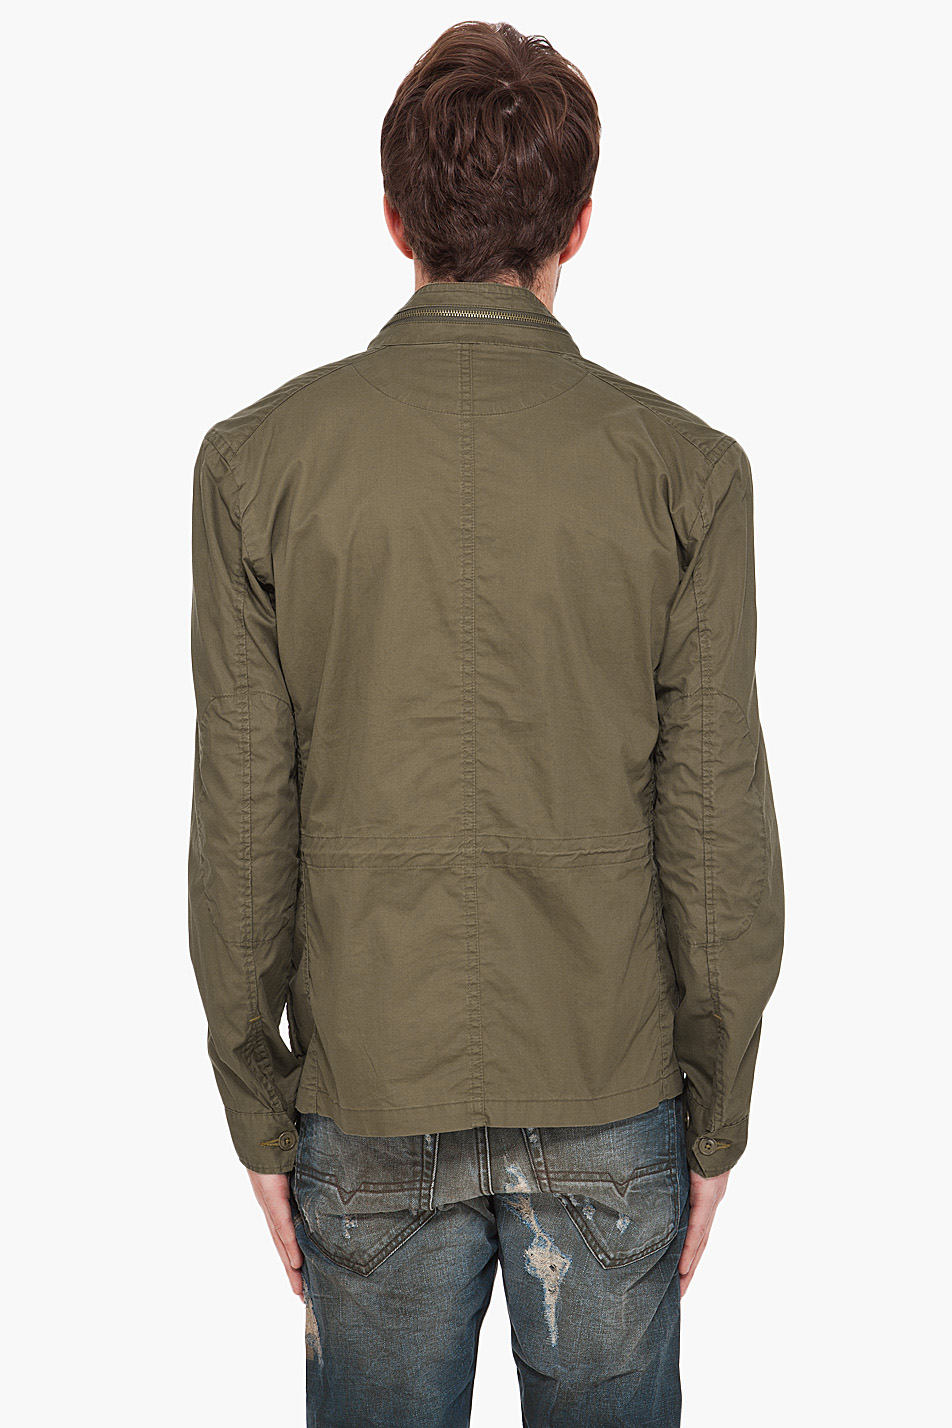 g star raw cl city overshirt in green for men lyst. Black Bedroom Furniture Sets. Home Design Ideas